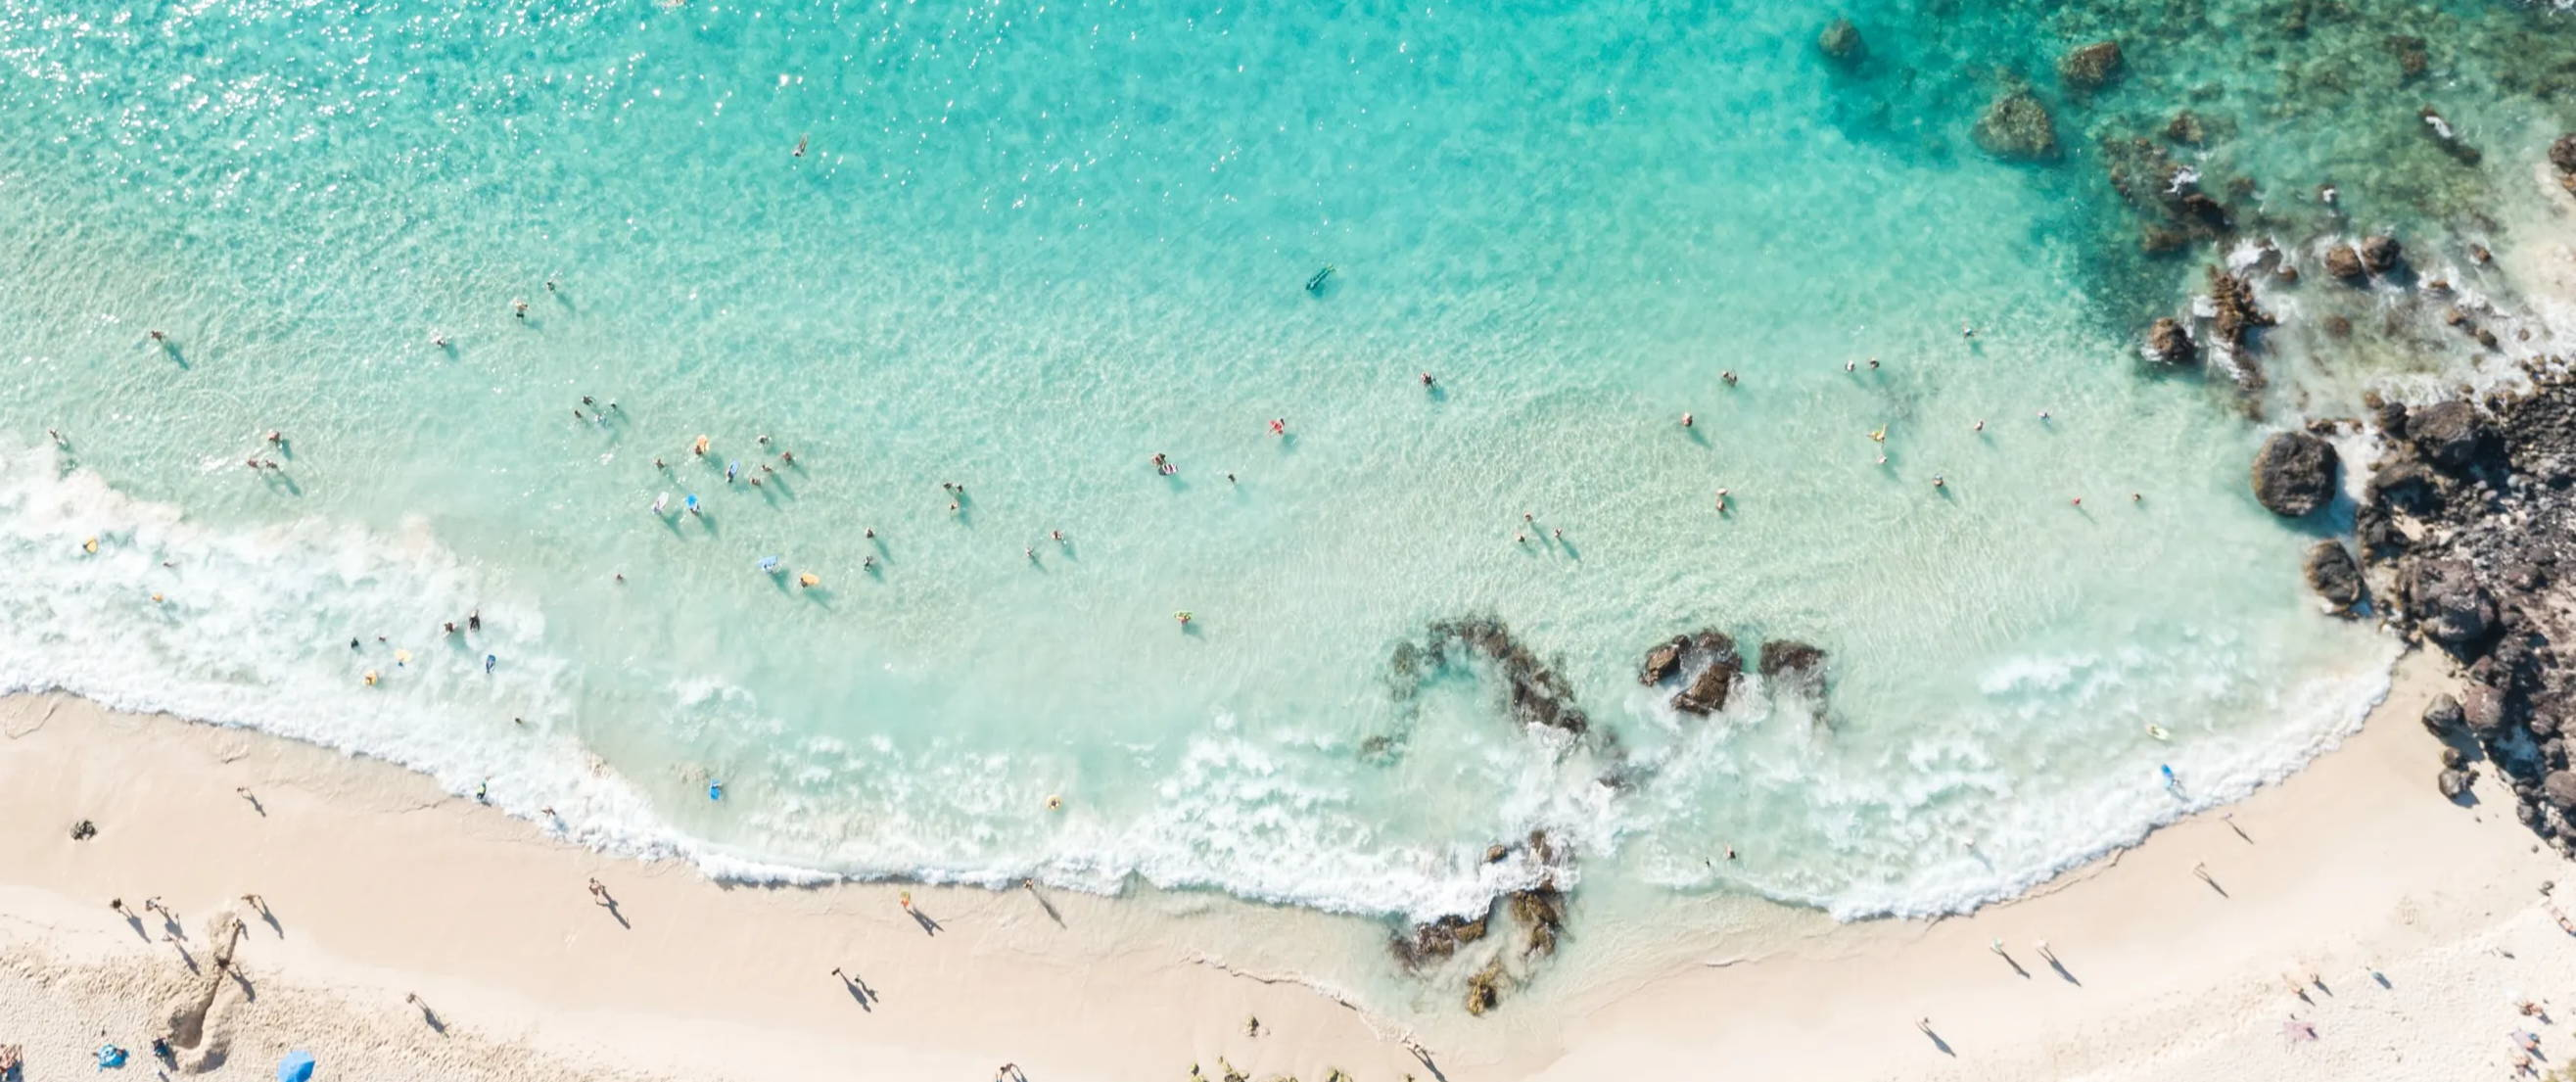 Aerial view of sandy beach and blue ocean with surfers in water